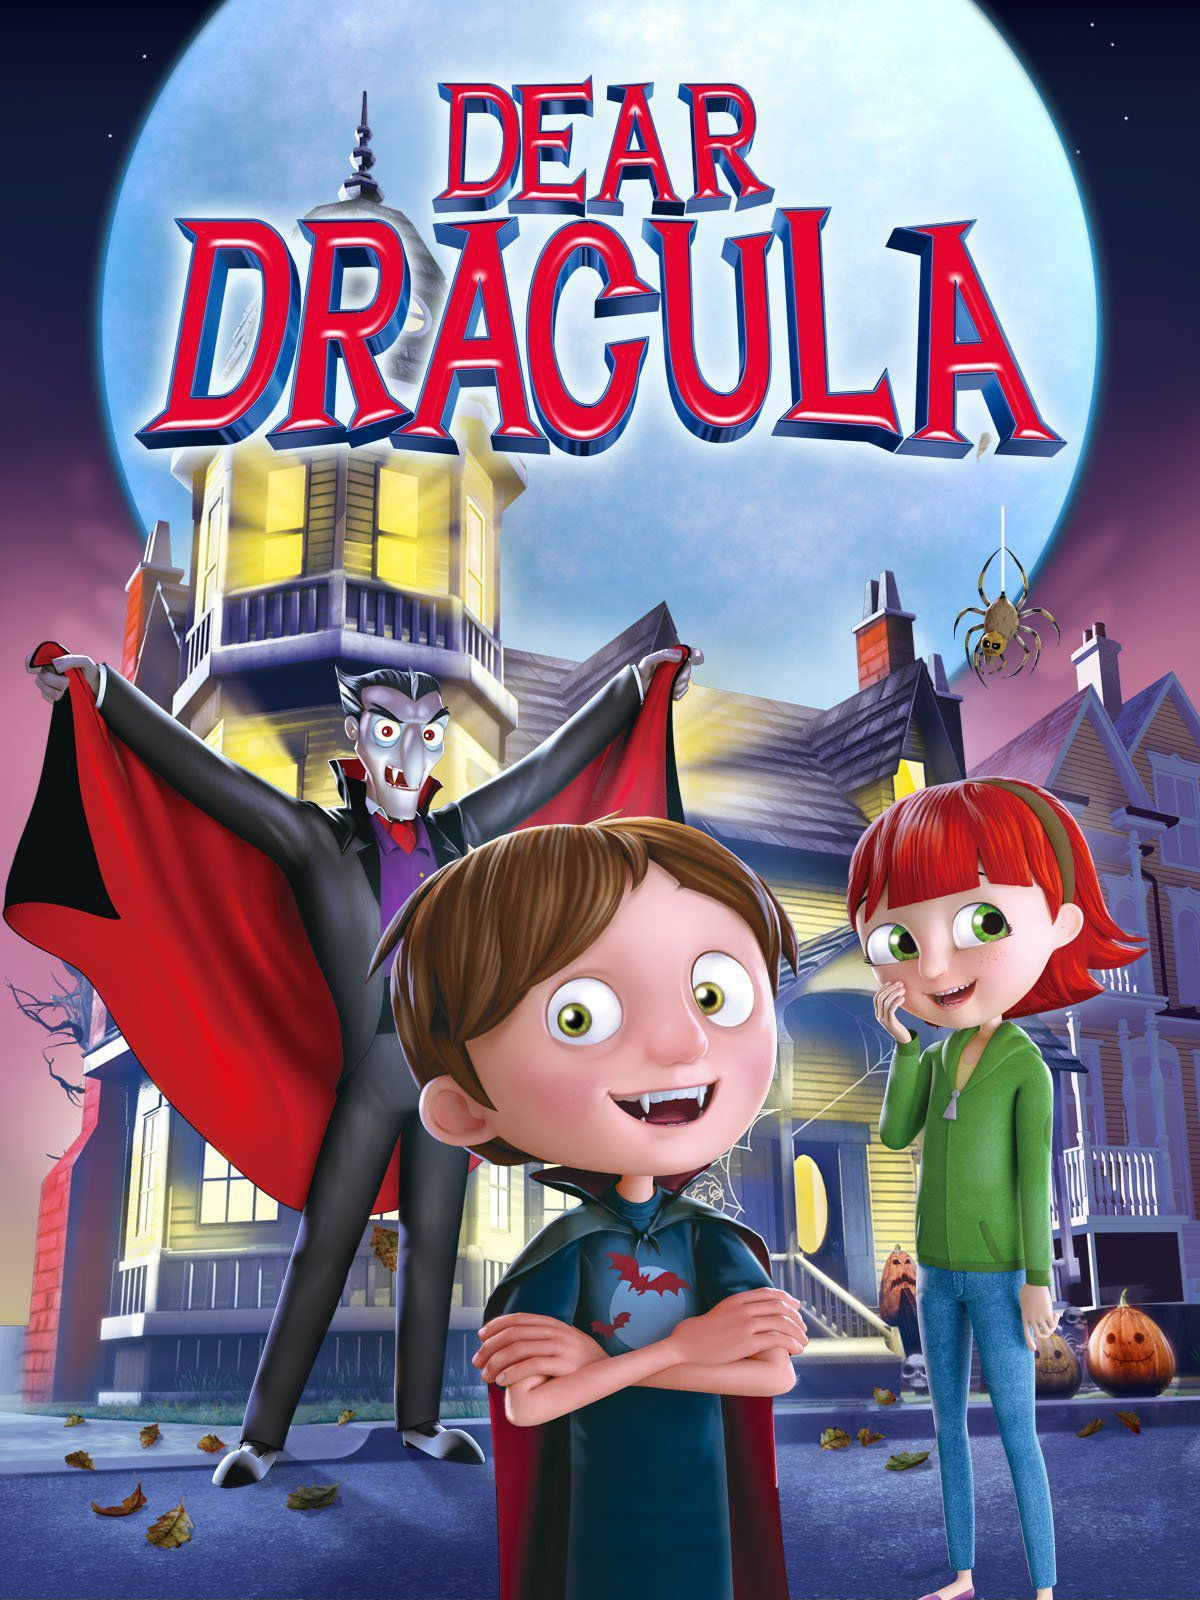 Halloween Movies on Netflix That Won't Give Kids the